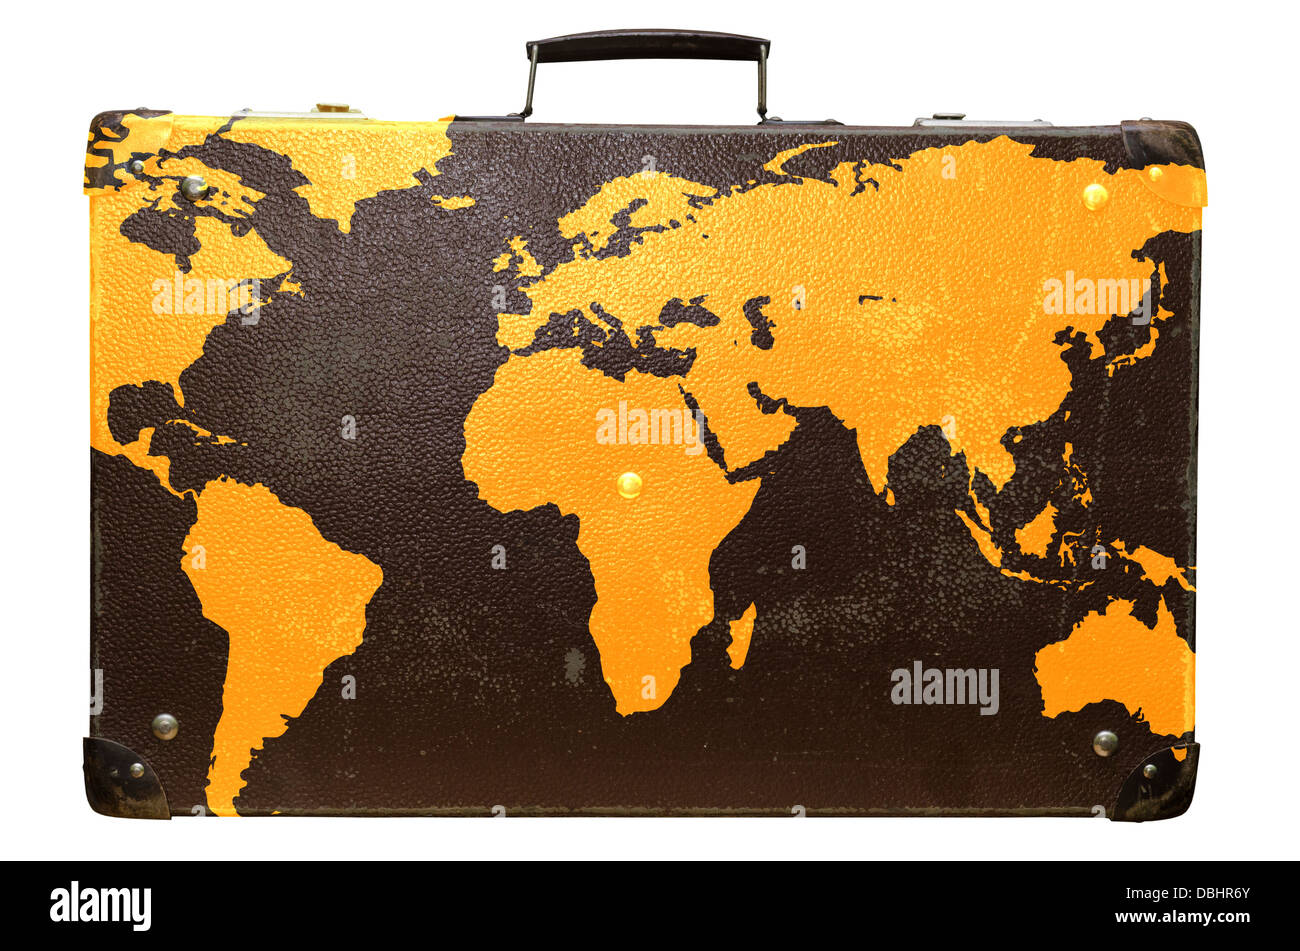 Vintage suitcase stock photos vintage suitcase stock images alamy old suitcase globetrotter with a world map stock image gumiabroncs Gallery